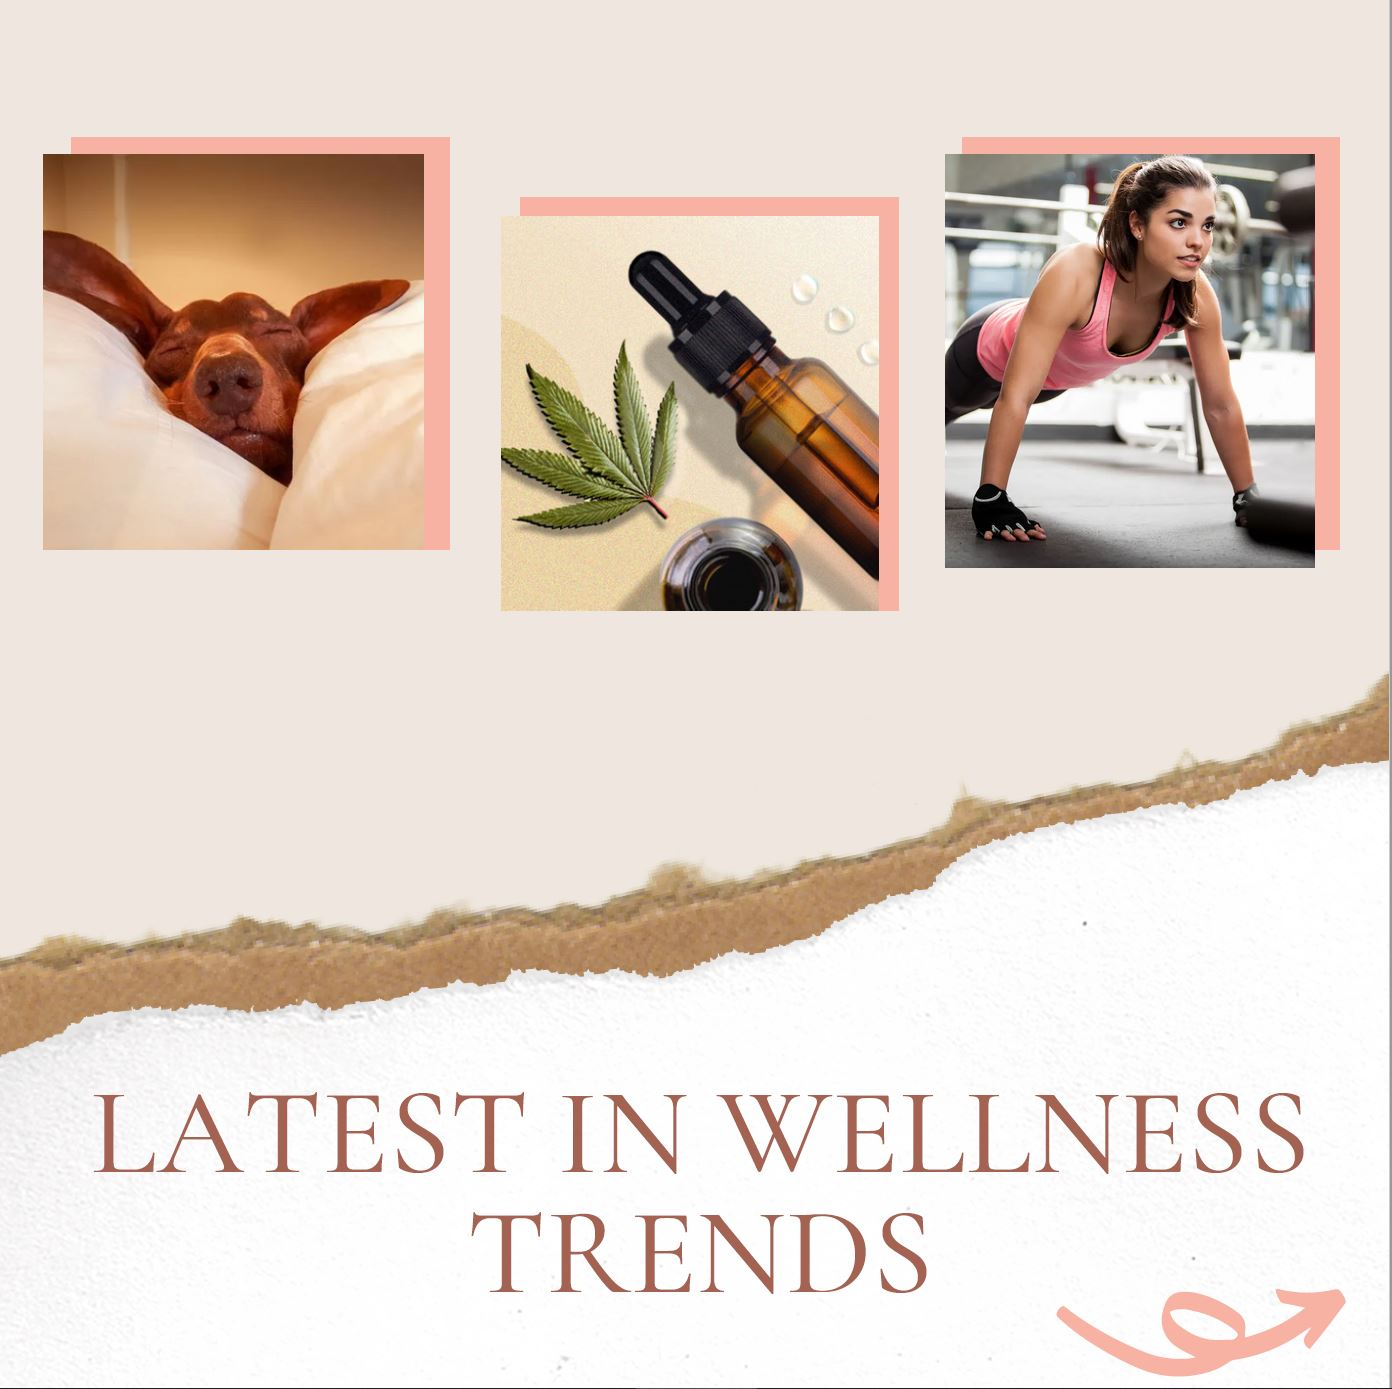 wellness trend pictures